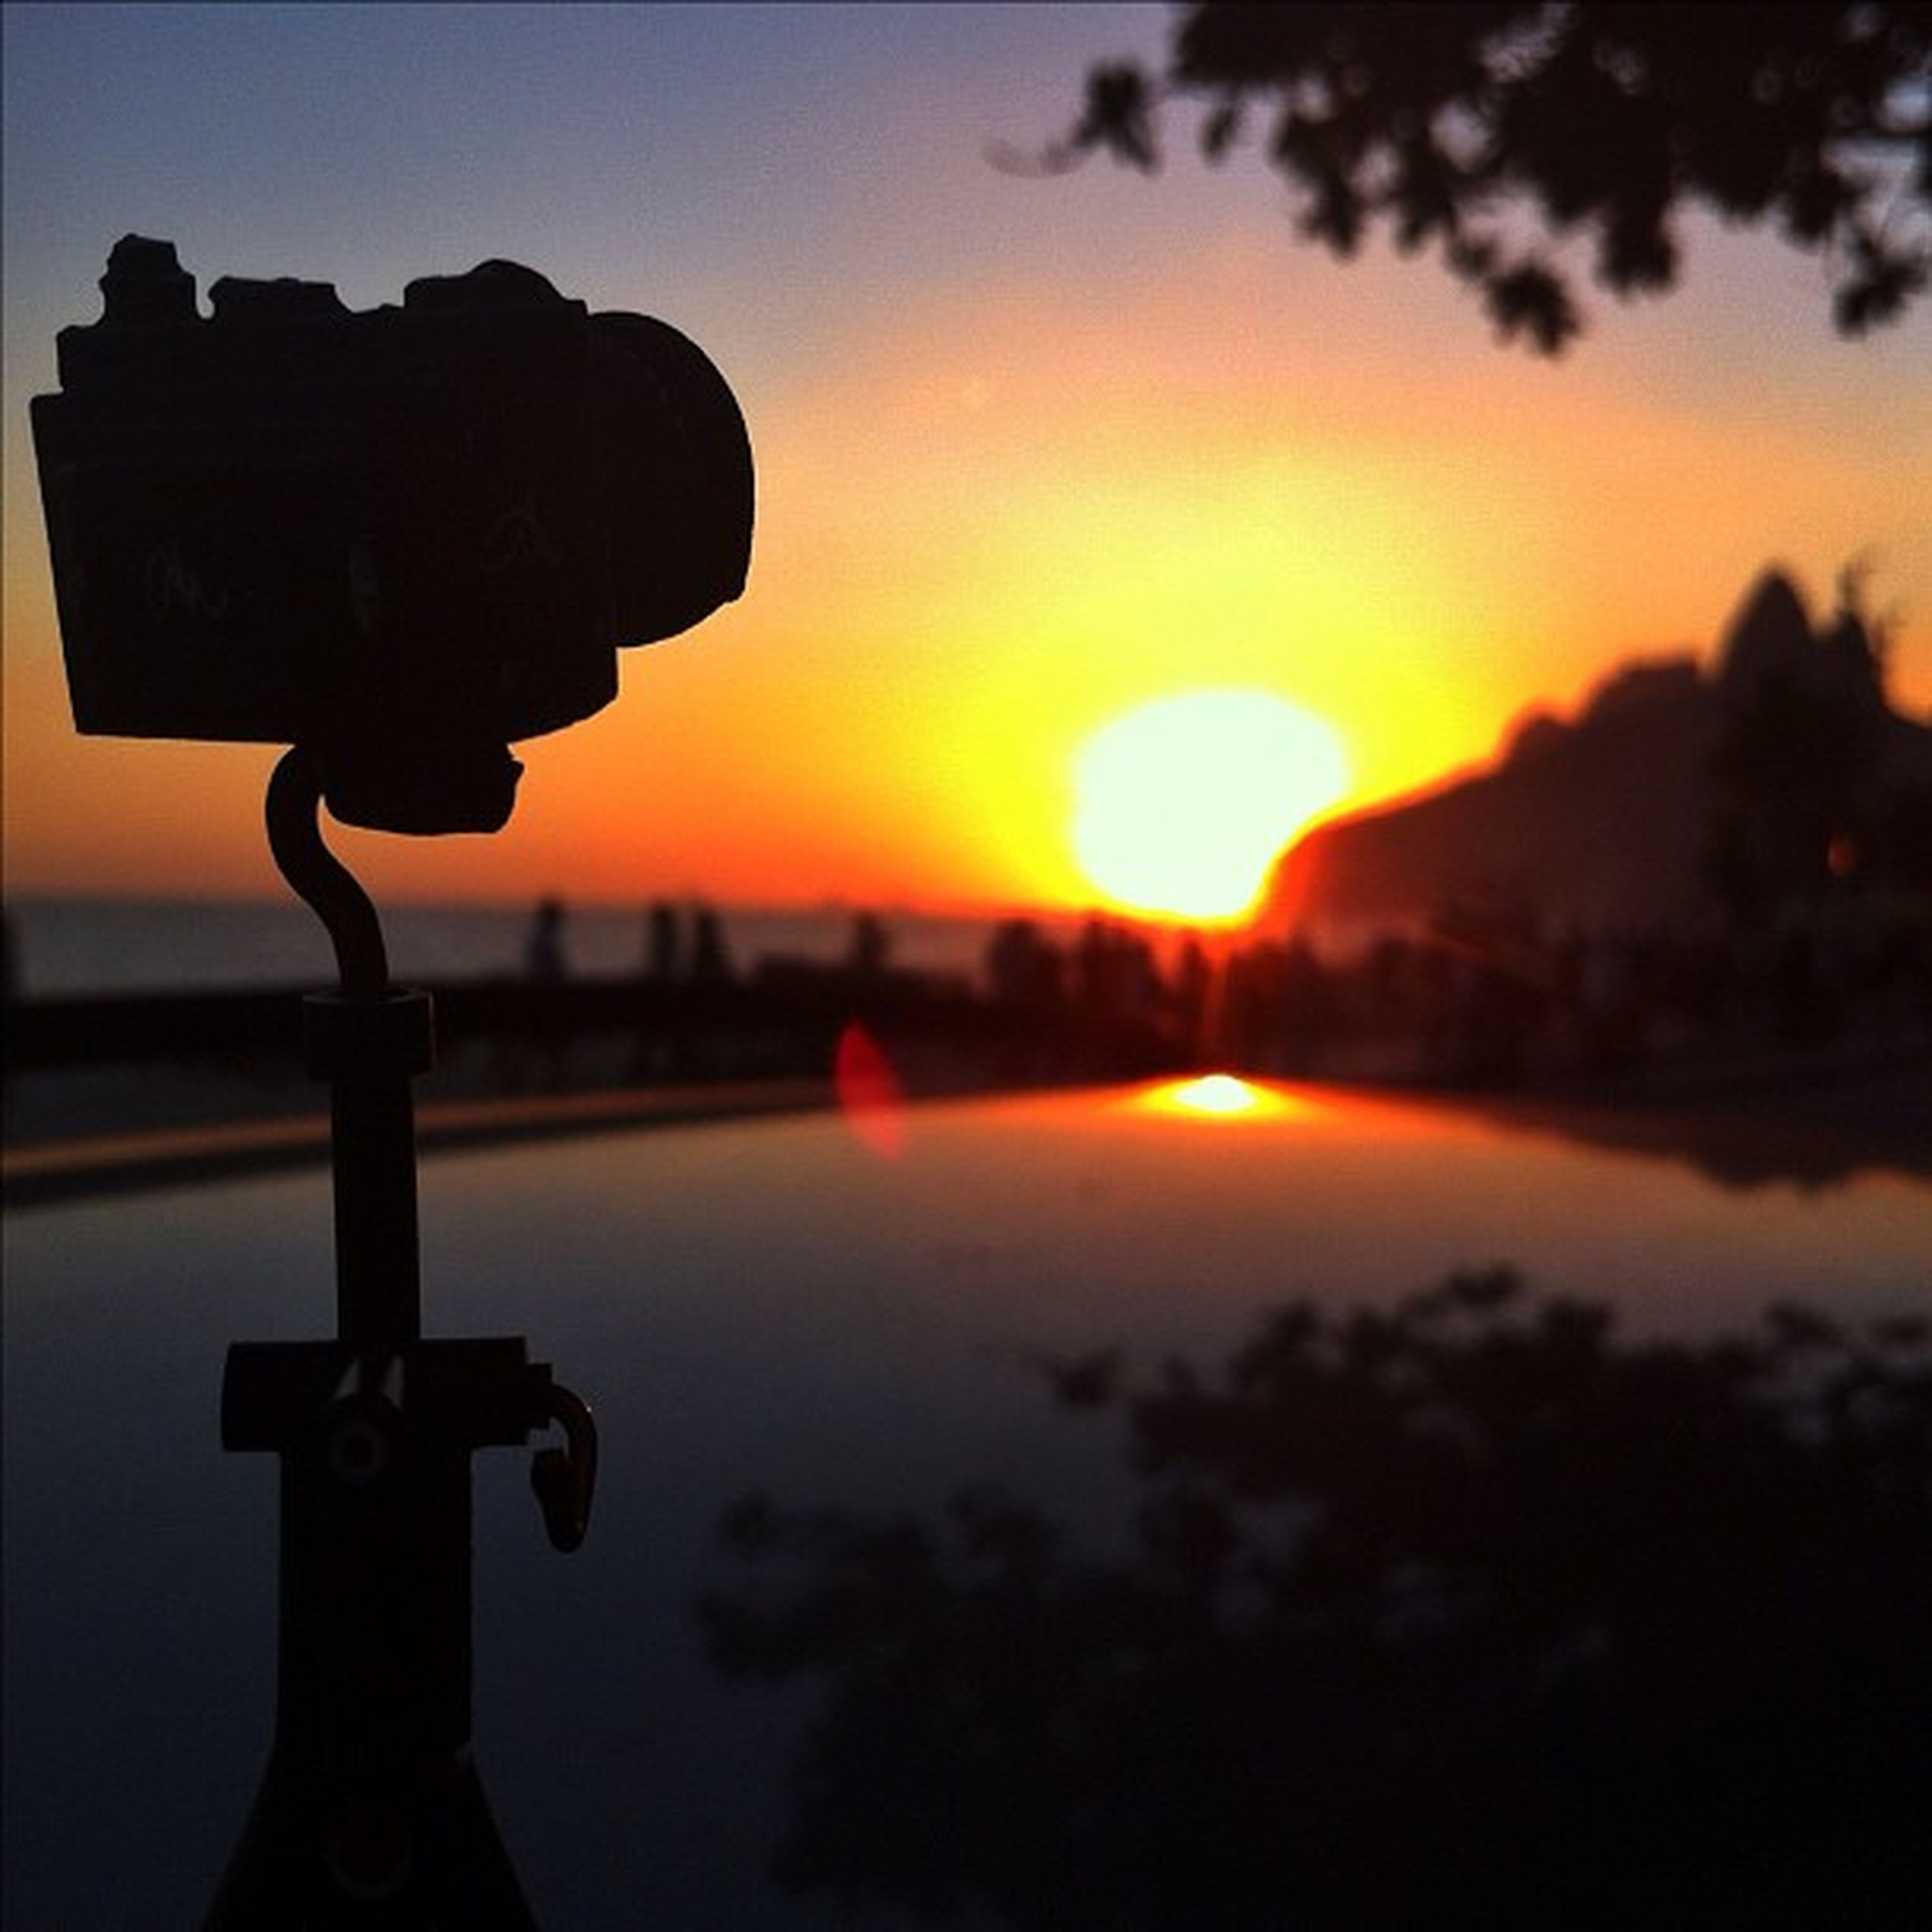 sunset, silhouette, orange color, sky, sun, scenics, tranquility, beauty in nature, tranquil scene, nature, focus on foreground, idyllic, sunlight, water, outdoors, close-up, reflection, dusk, no people, cloud - sky